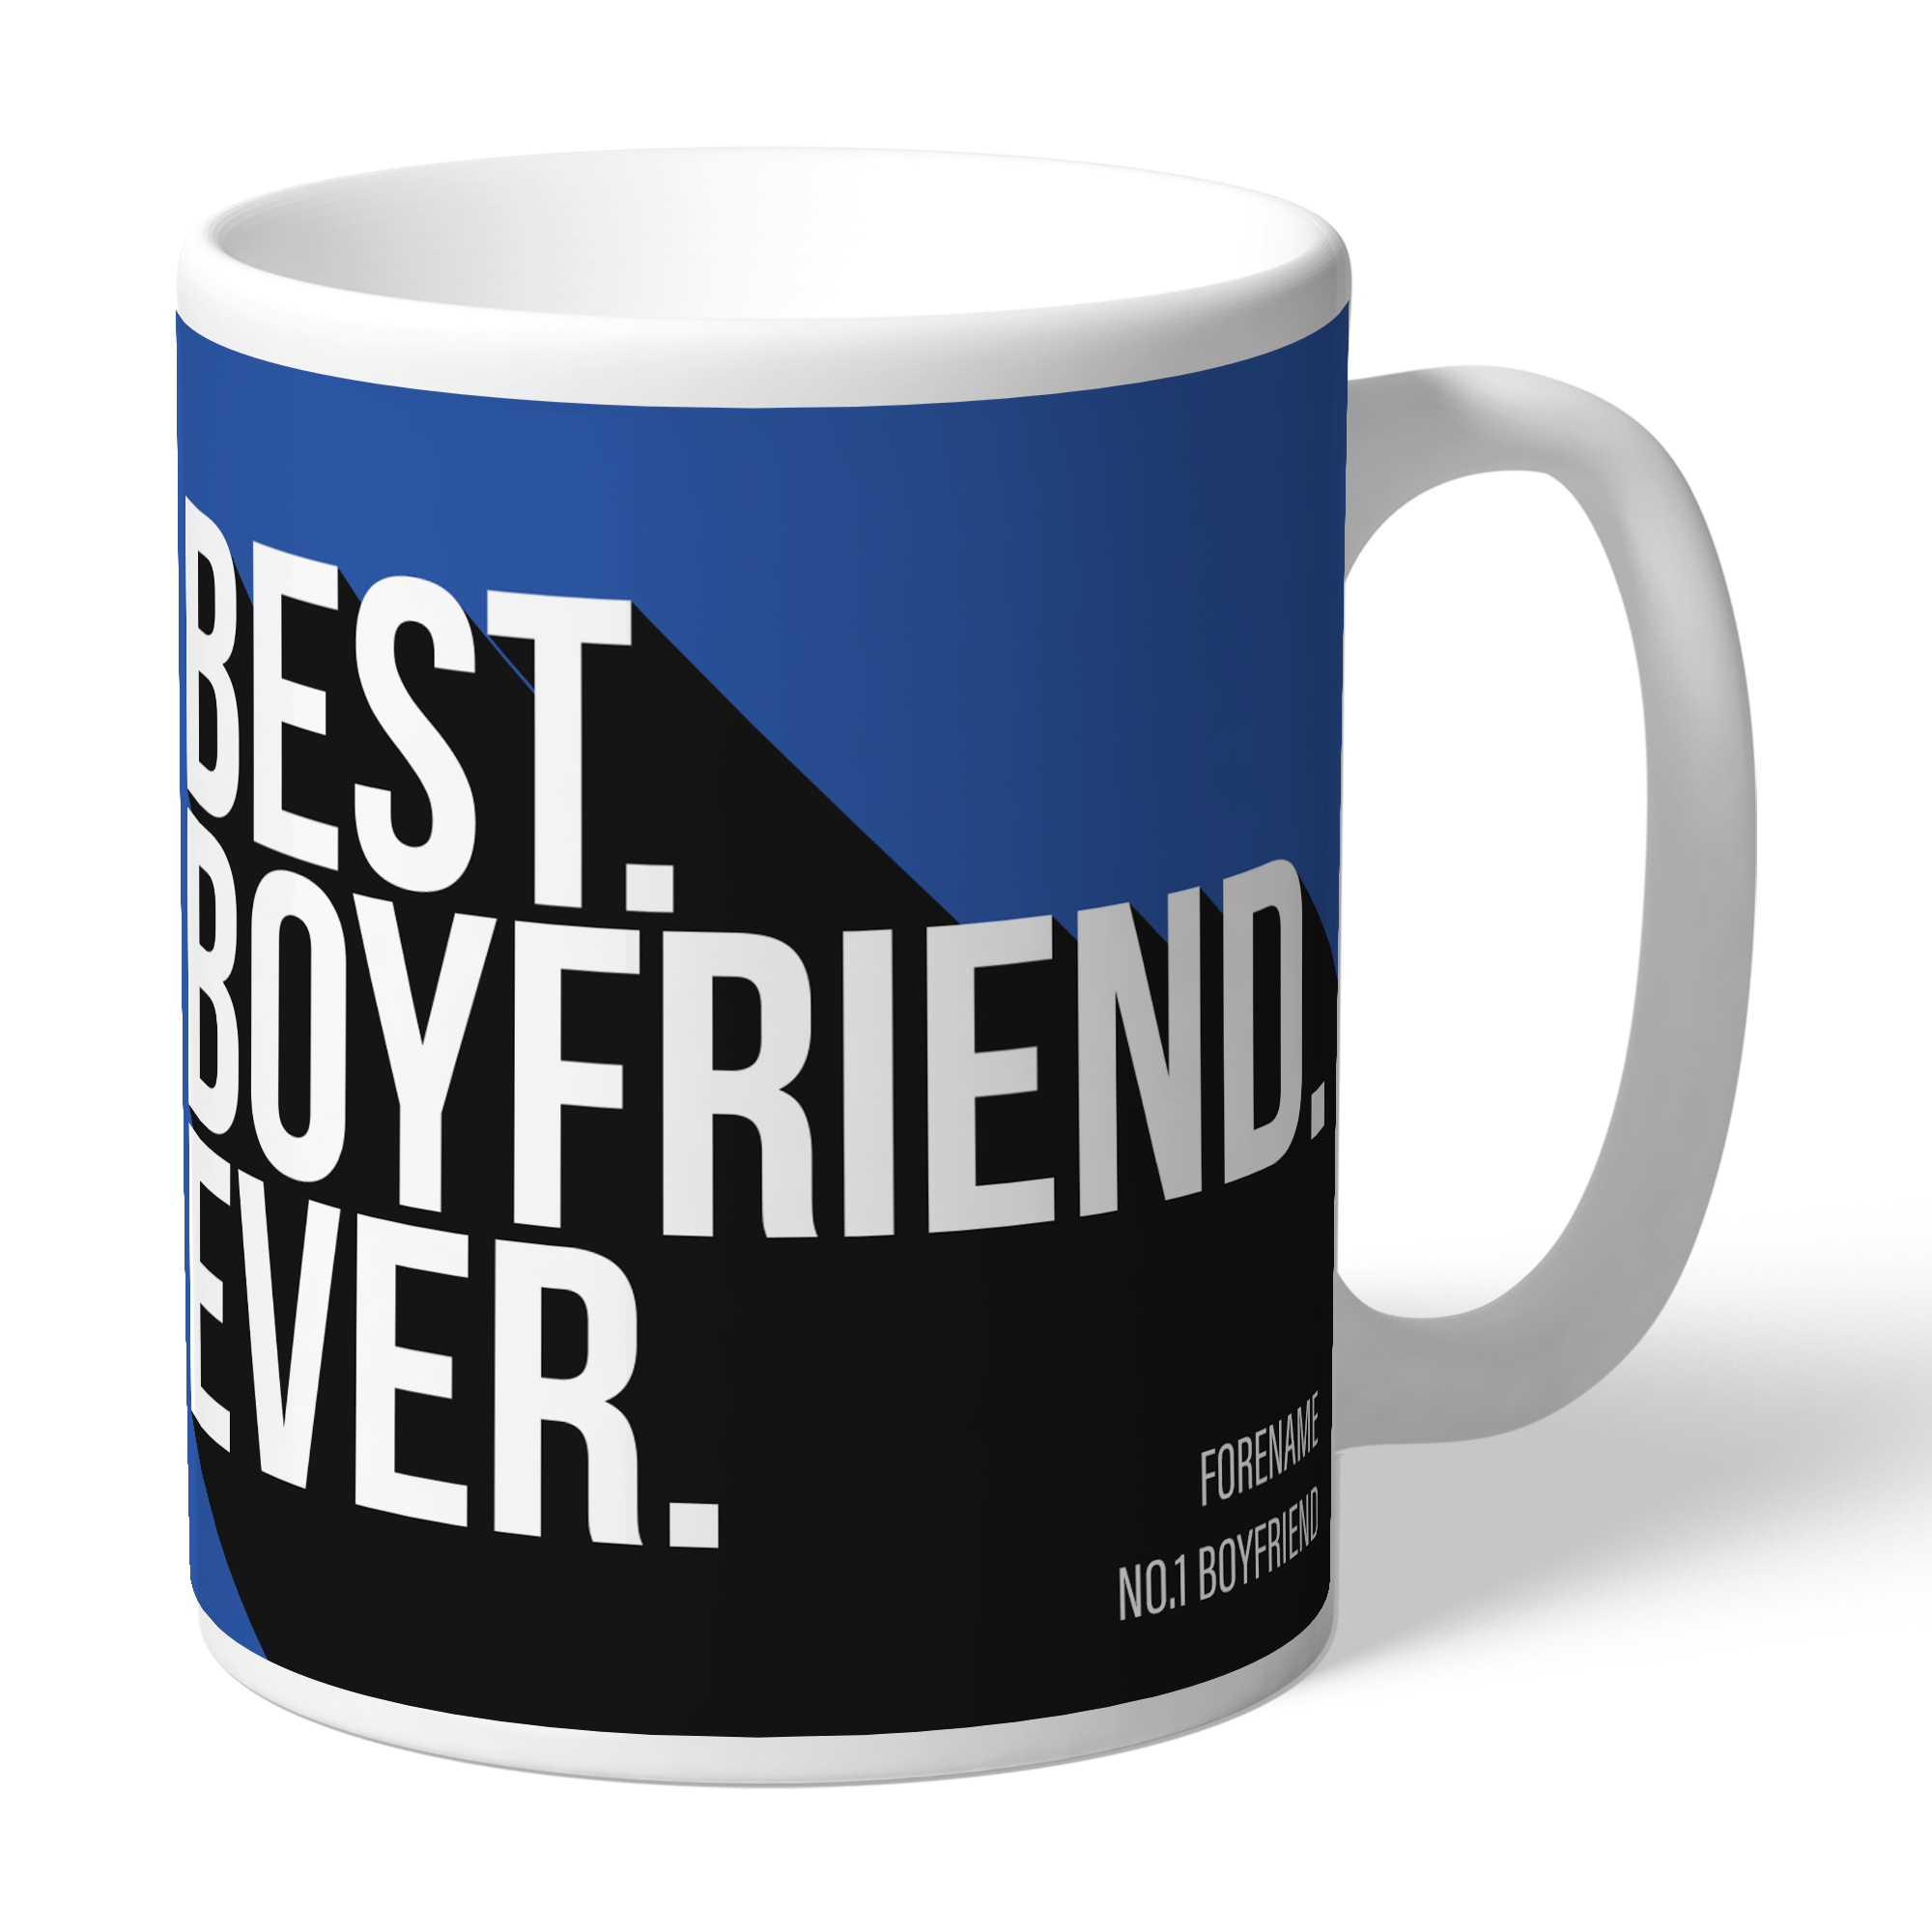 Sheffield Wednesday Best Boyfriend Ever Mug